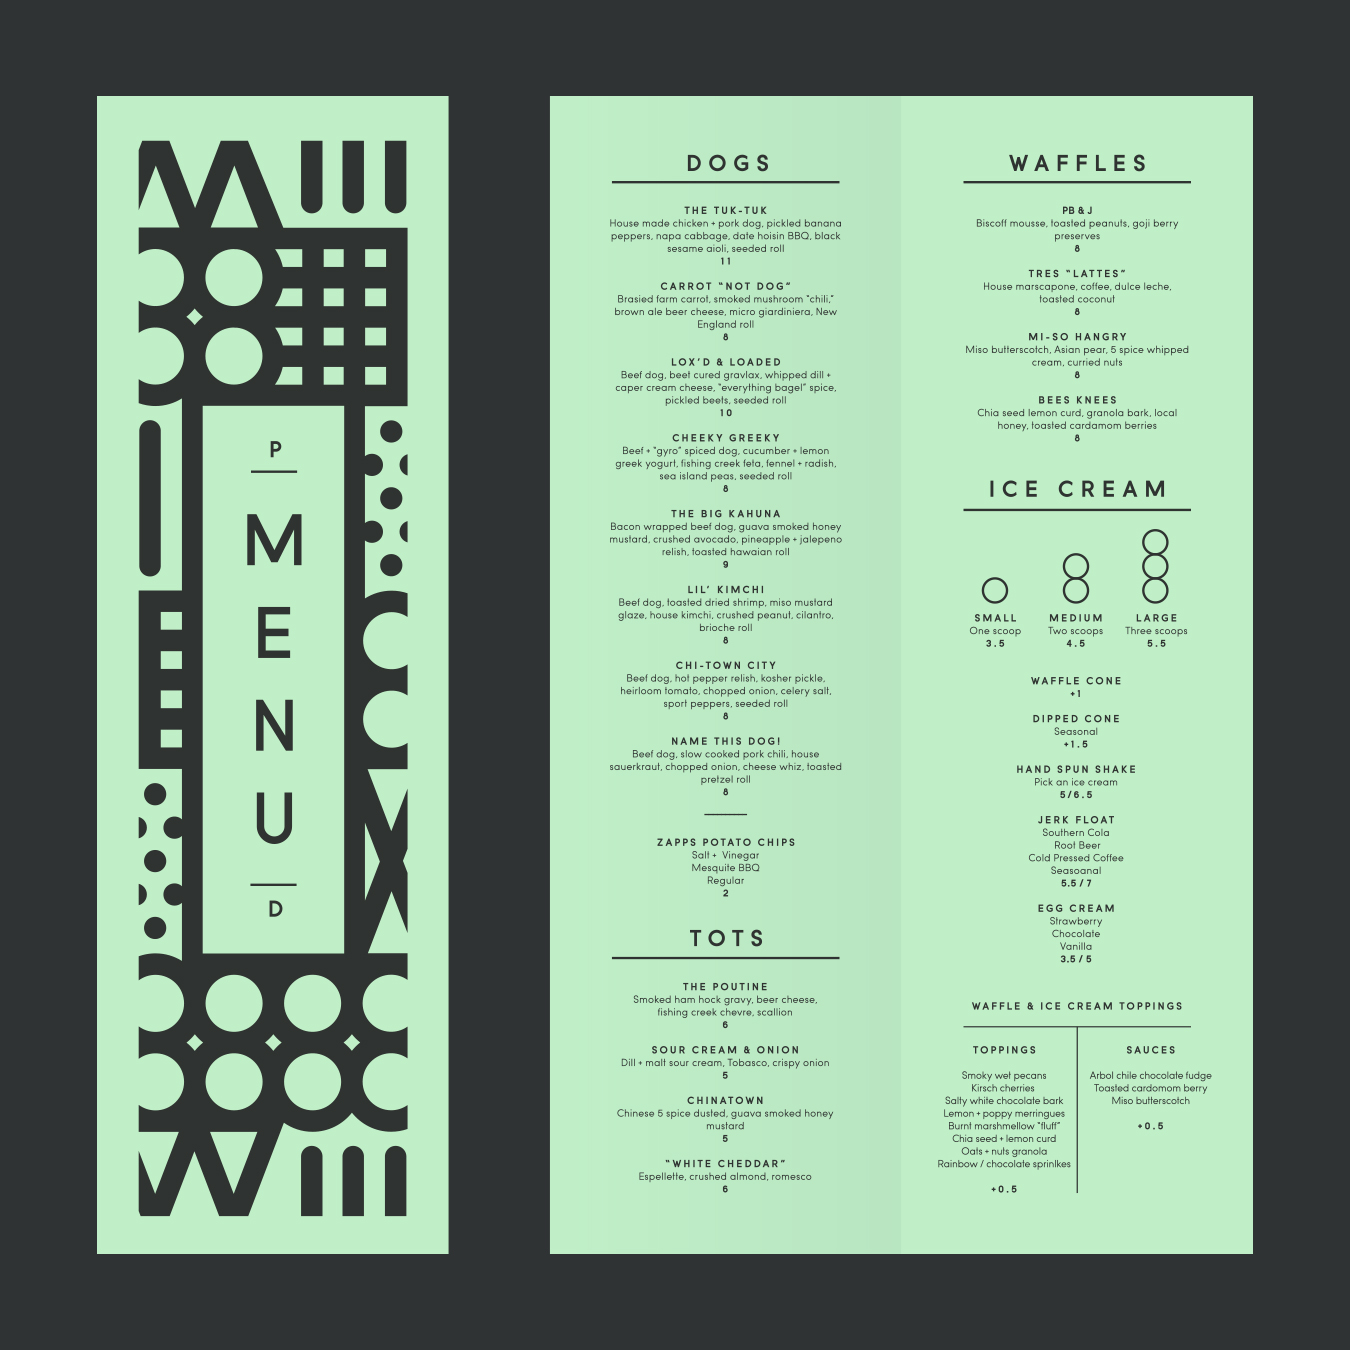 Parlor Deluxe Menu Design